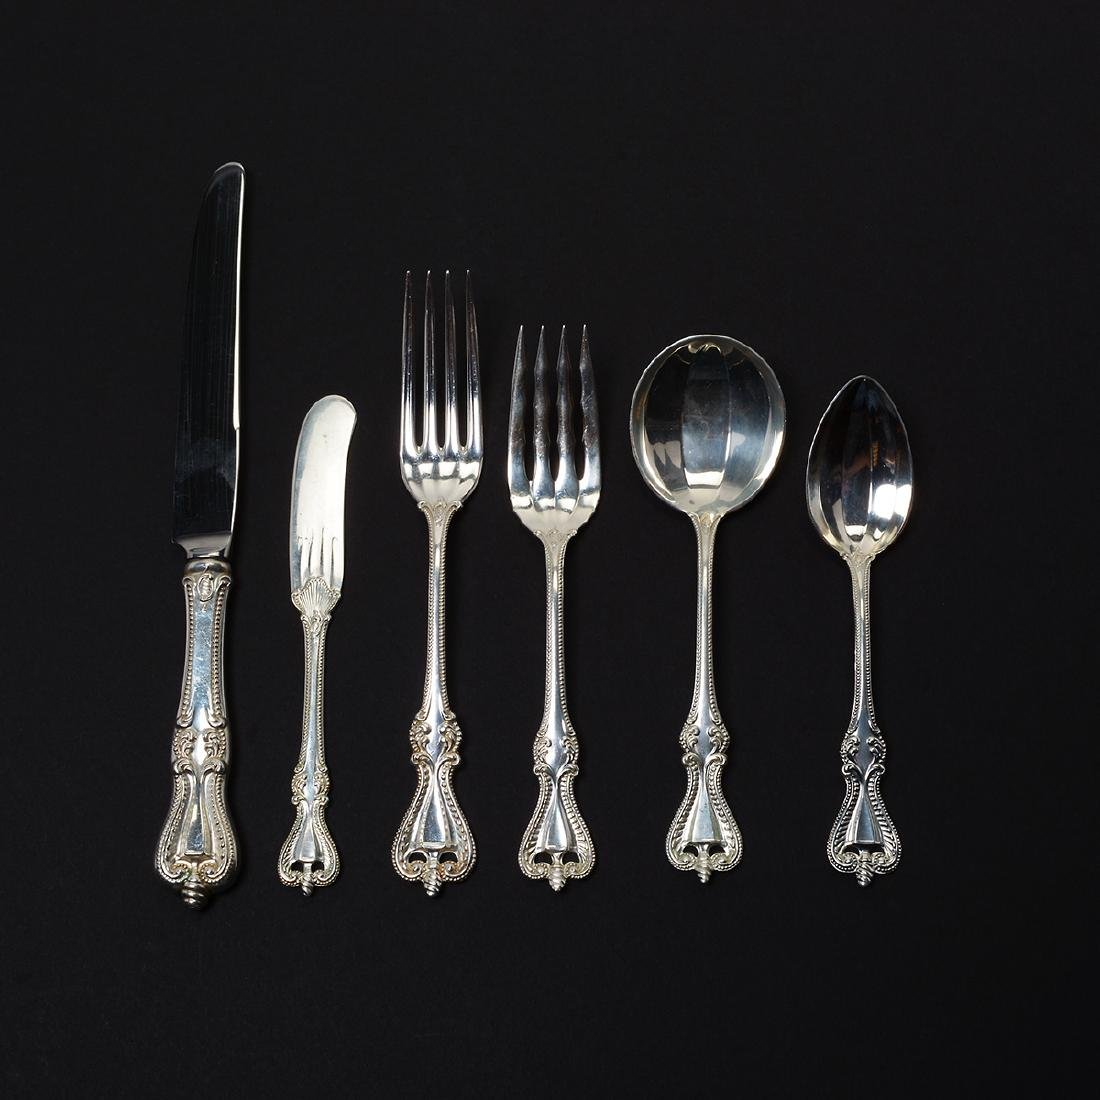 Towle Chippendale Sterling Flatware Set (72 Pieces)